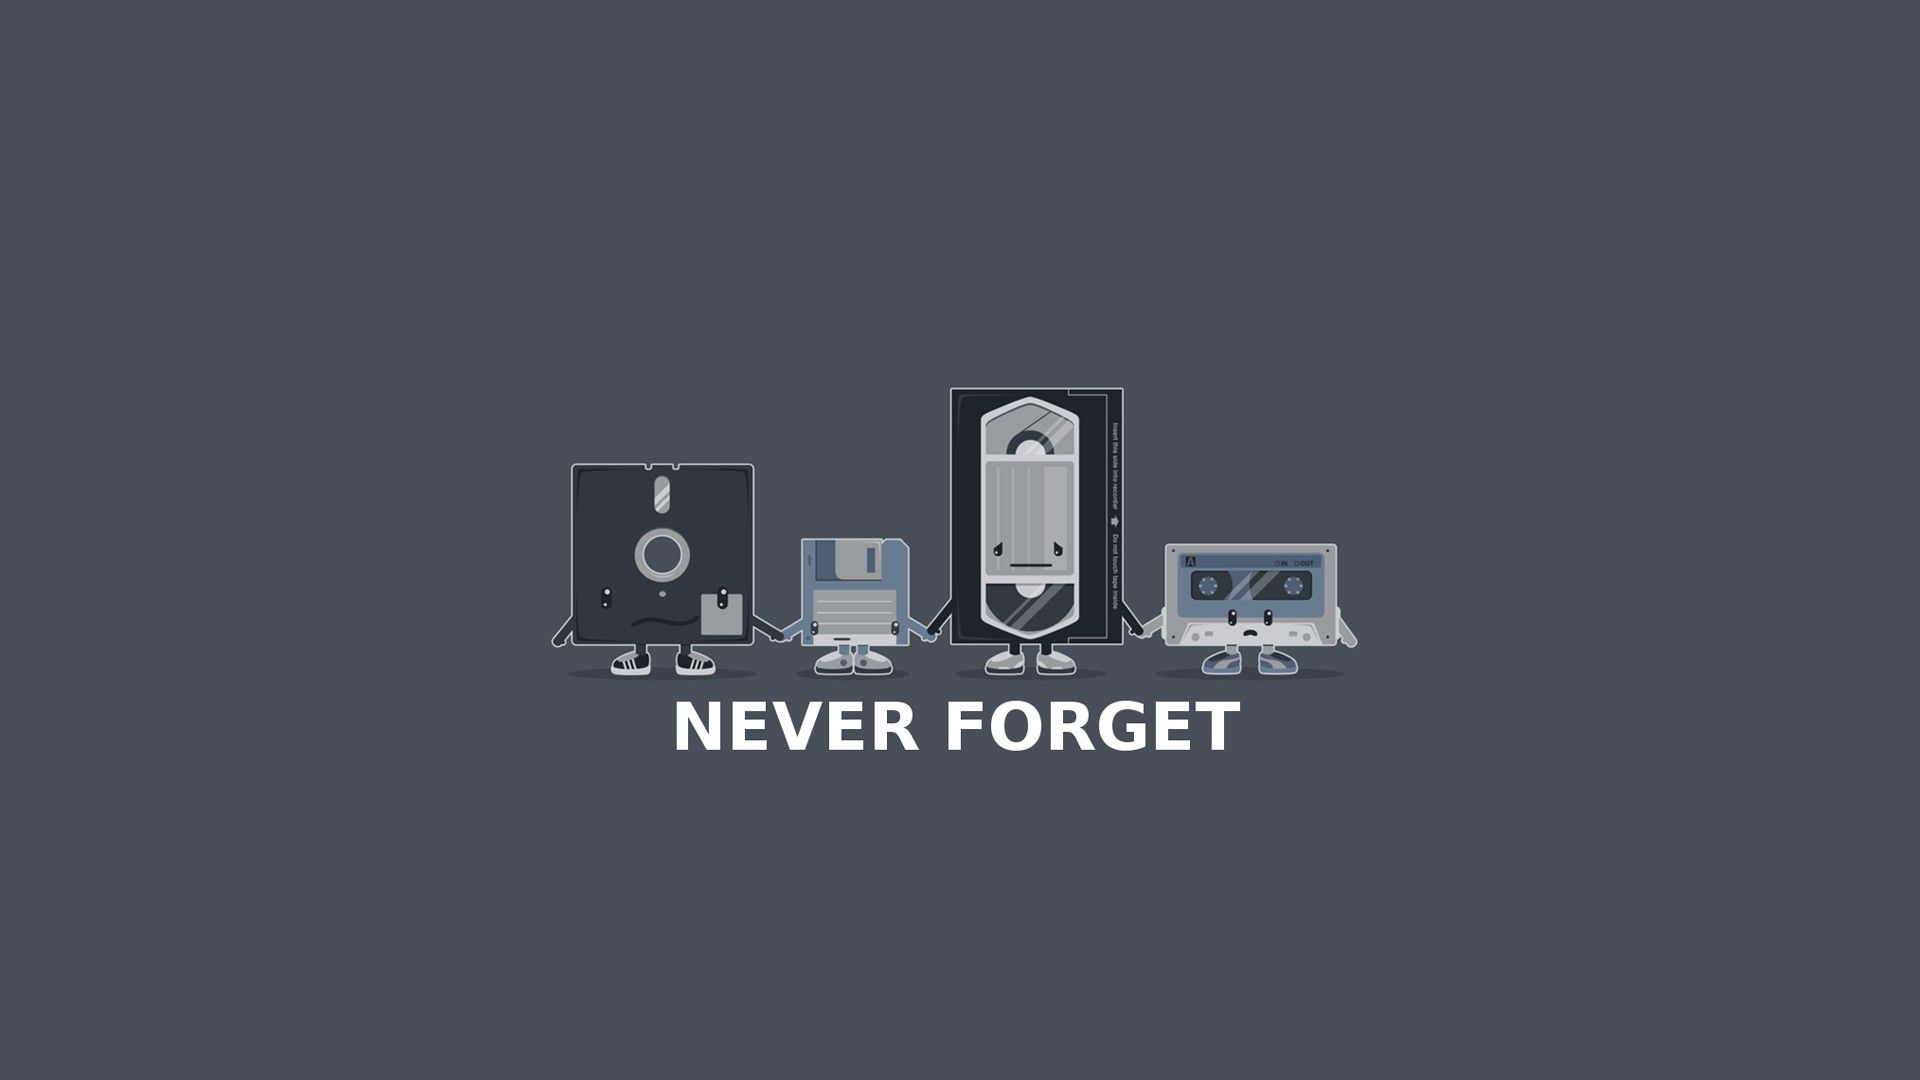 never forget computers history kicking it Old School D Pc 1920x1080